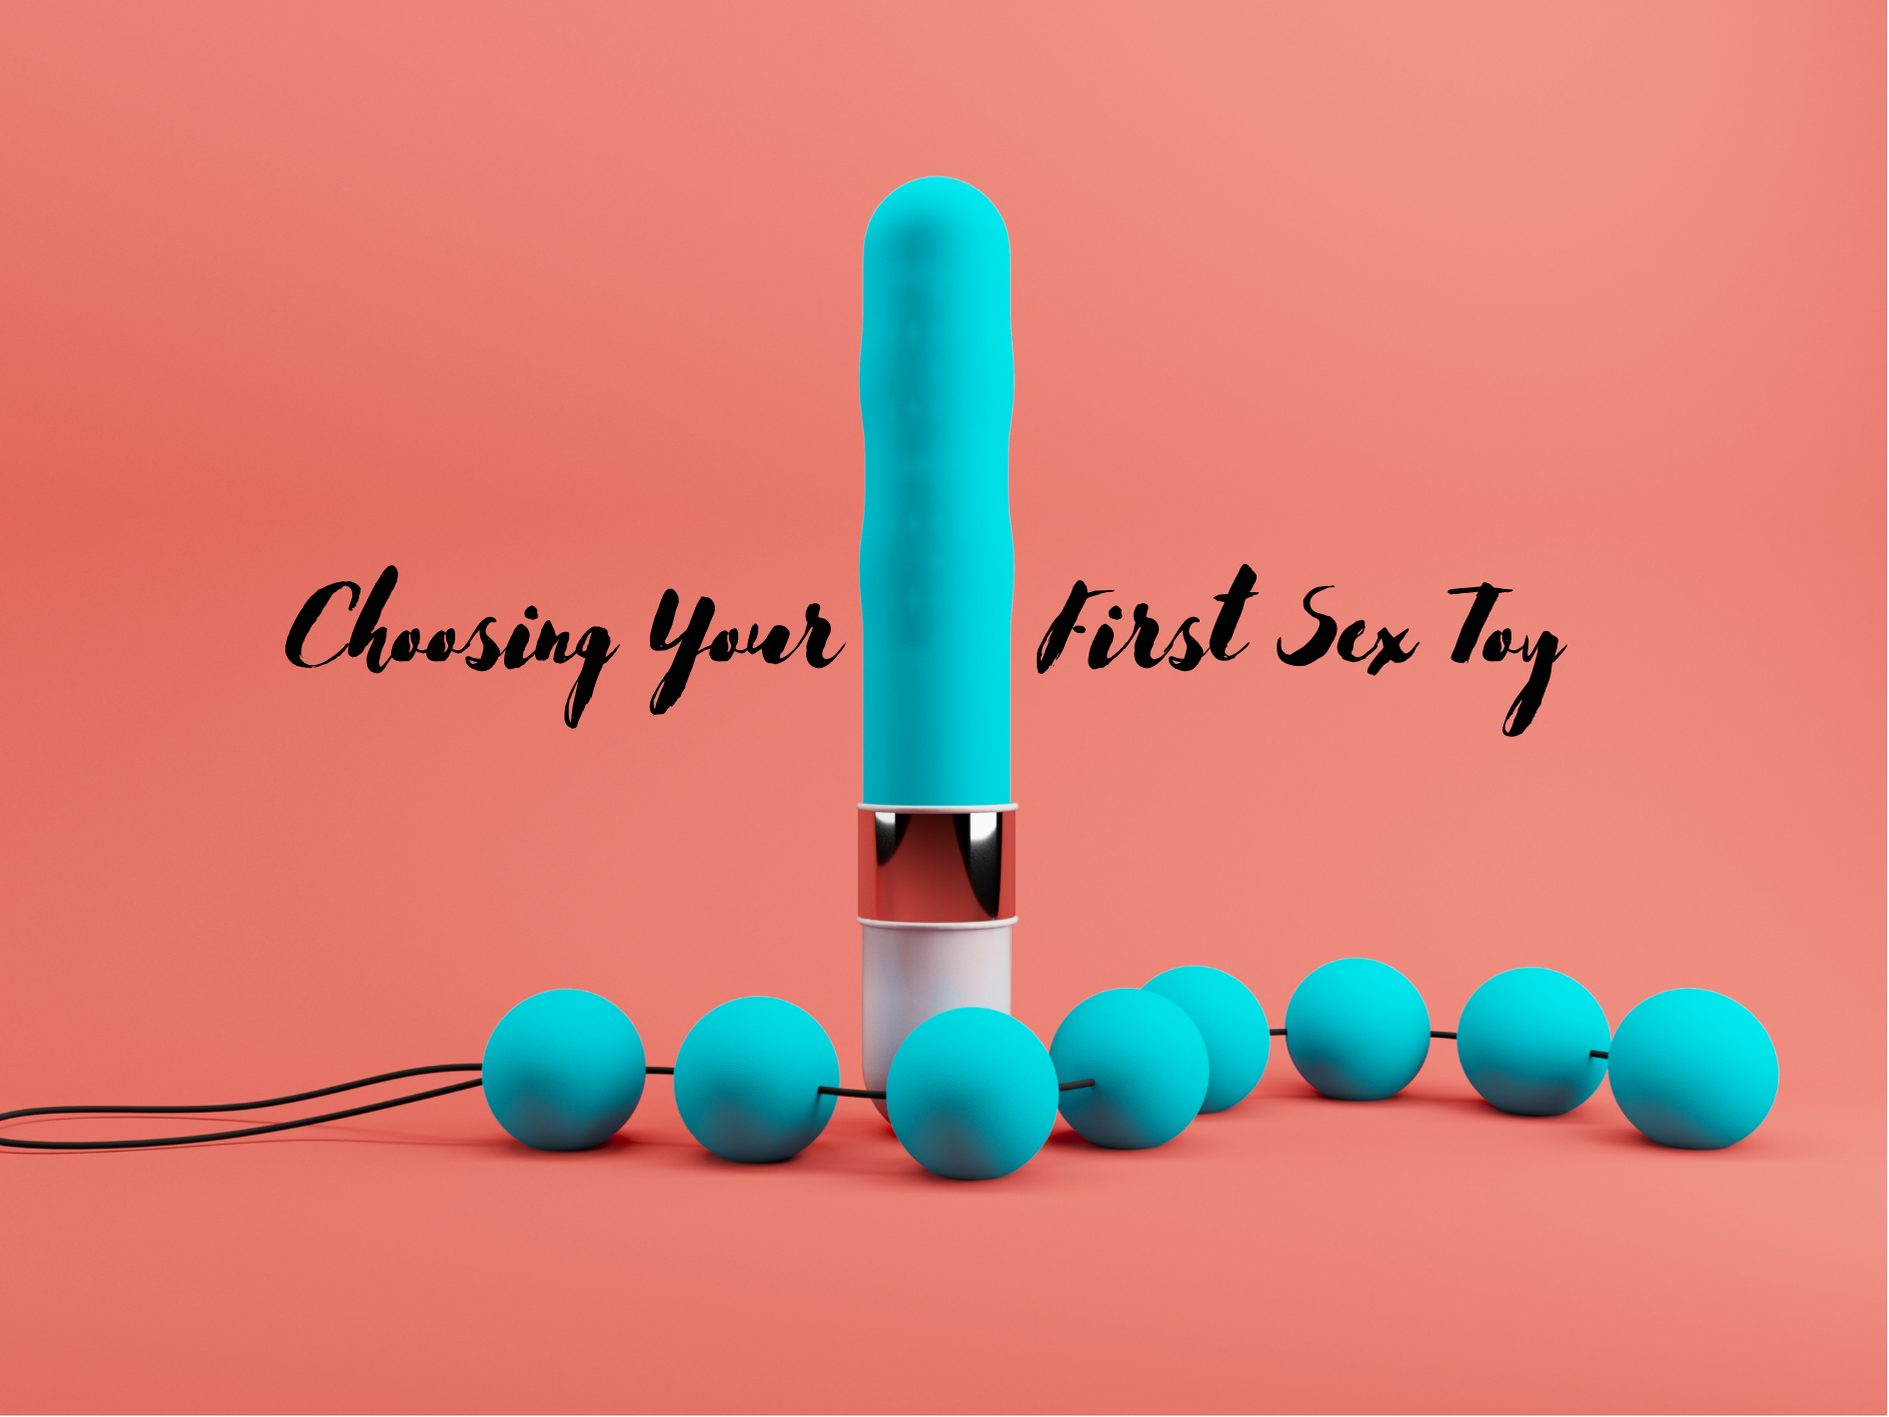 6 Important Things to Consider When You Choose Your First Sex Toy